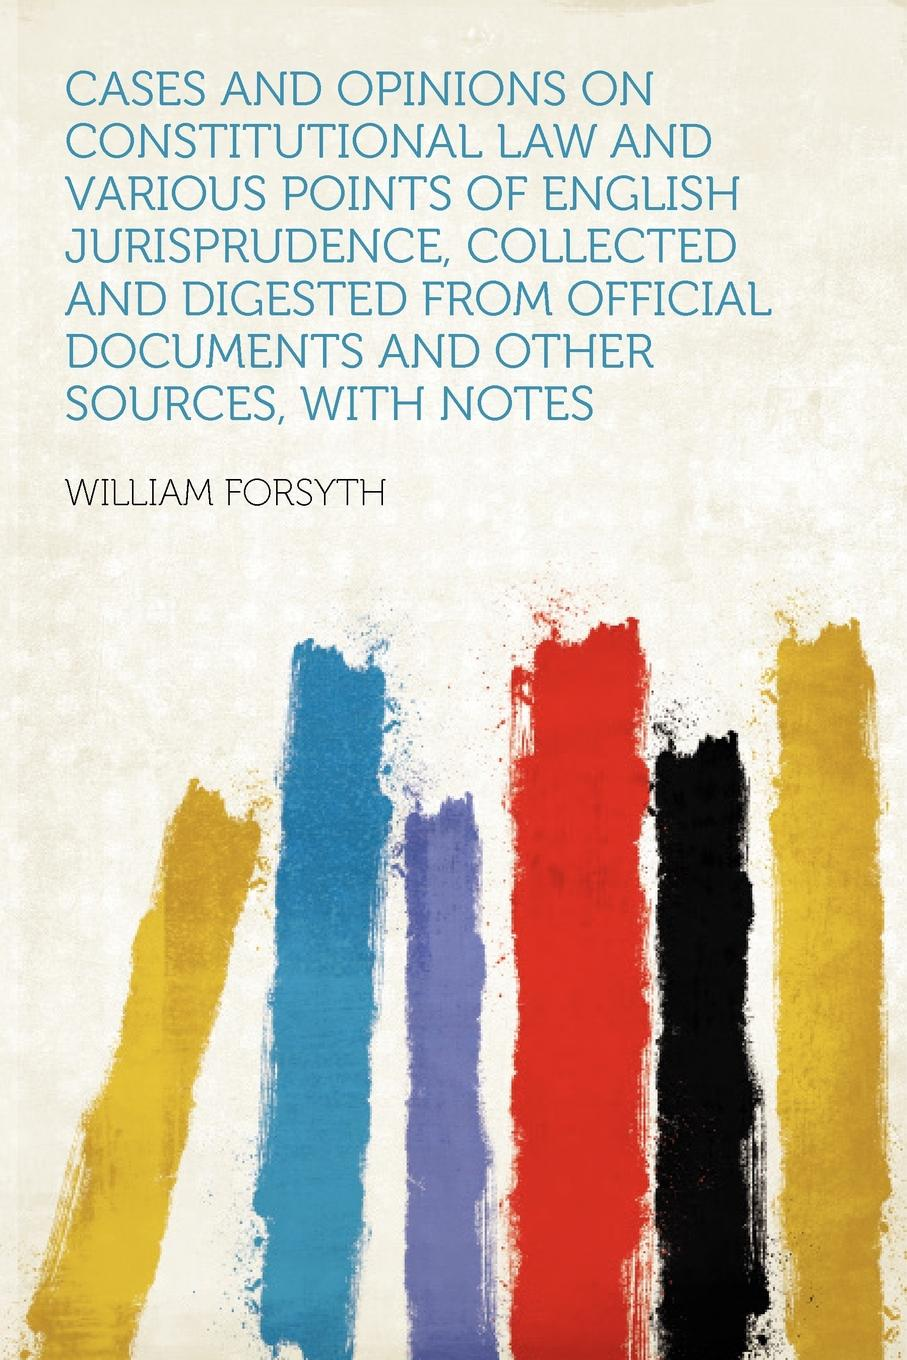 Cases and Opinions on Constitutional Law Various Points of English Jurisprudence, Collected Digested From Official Documents Other Sources, With Notes